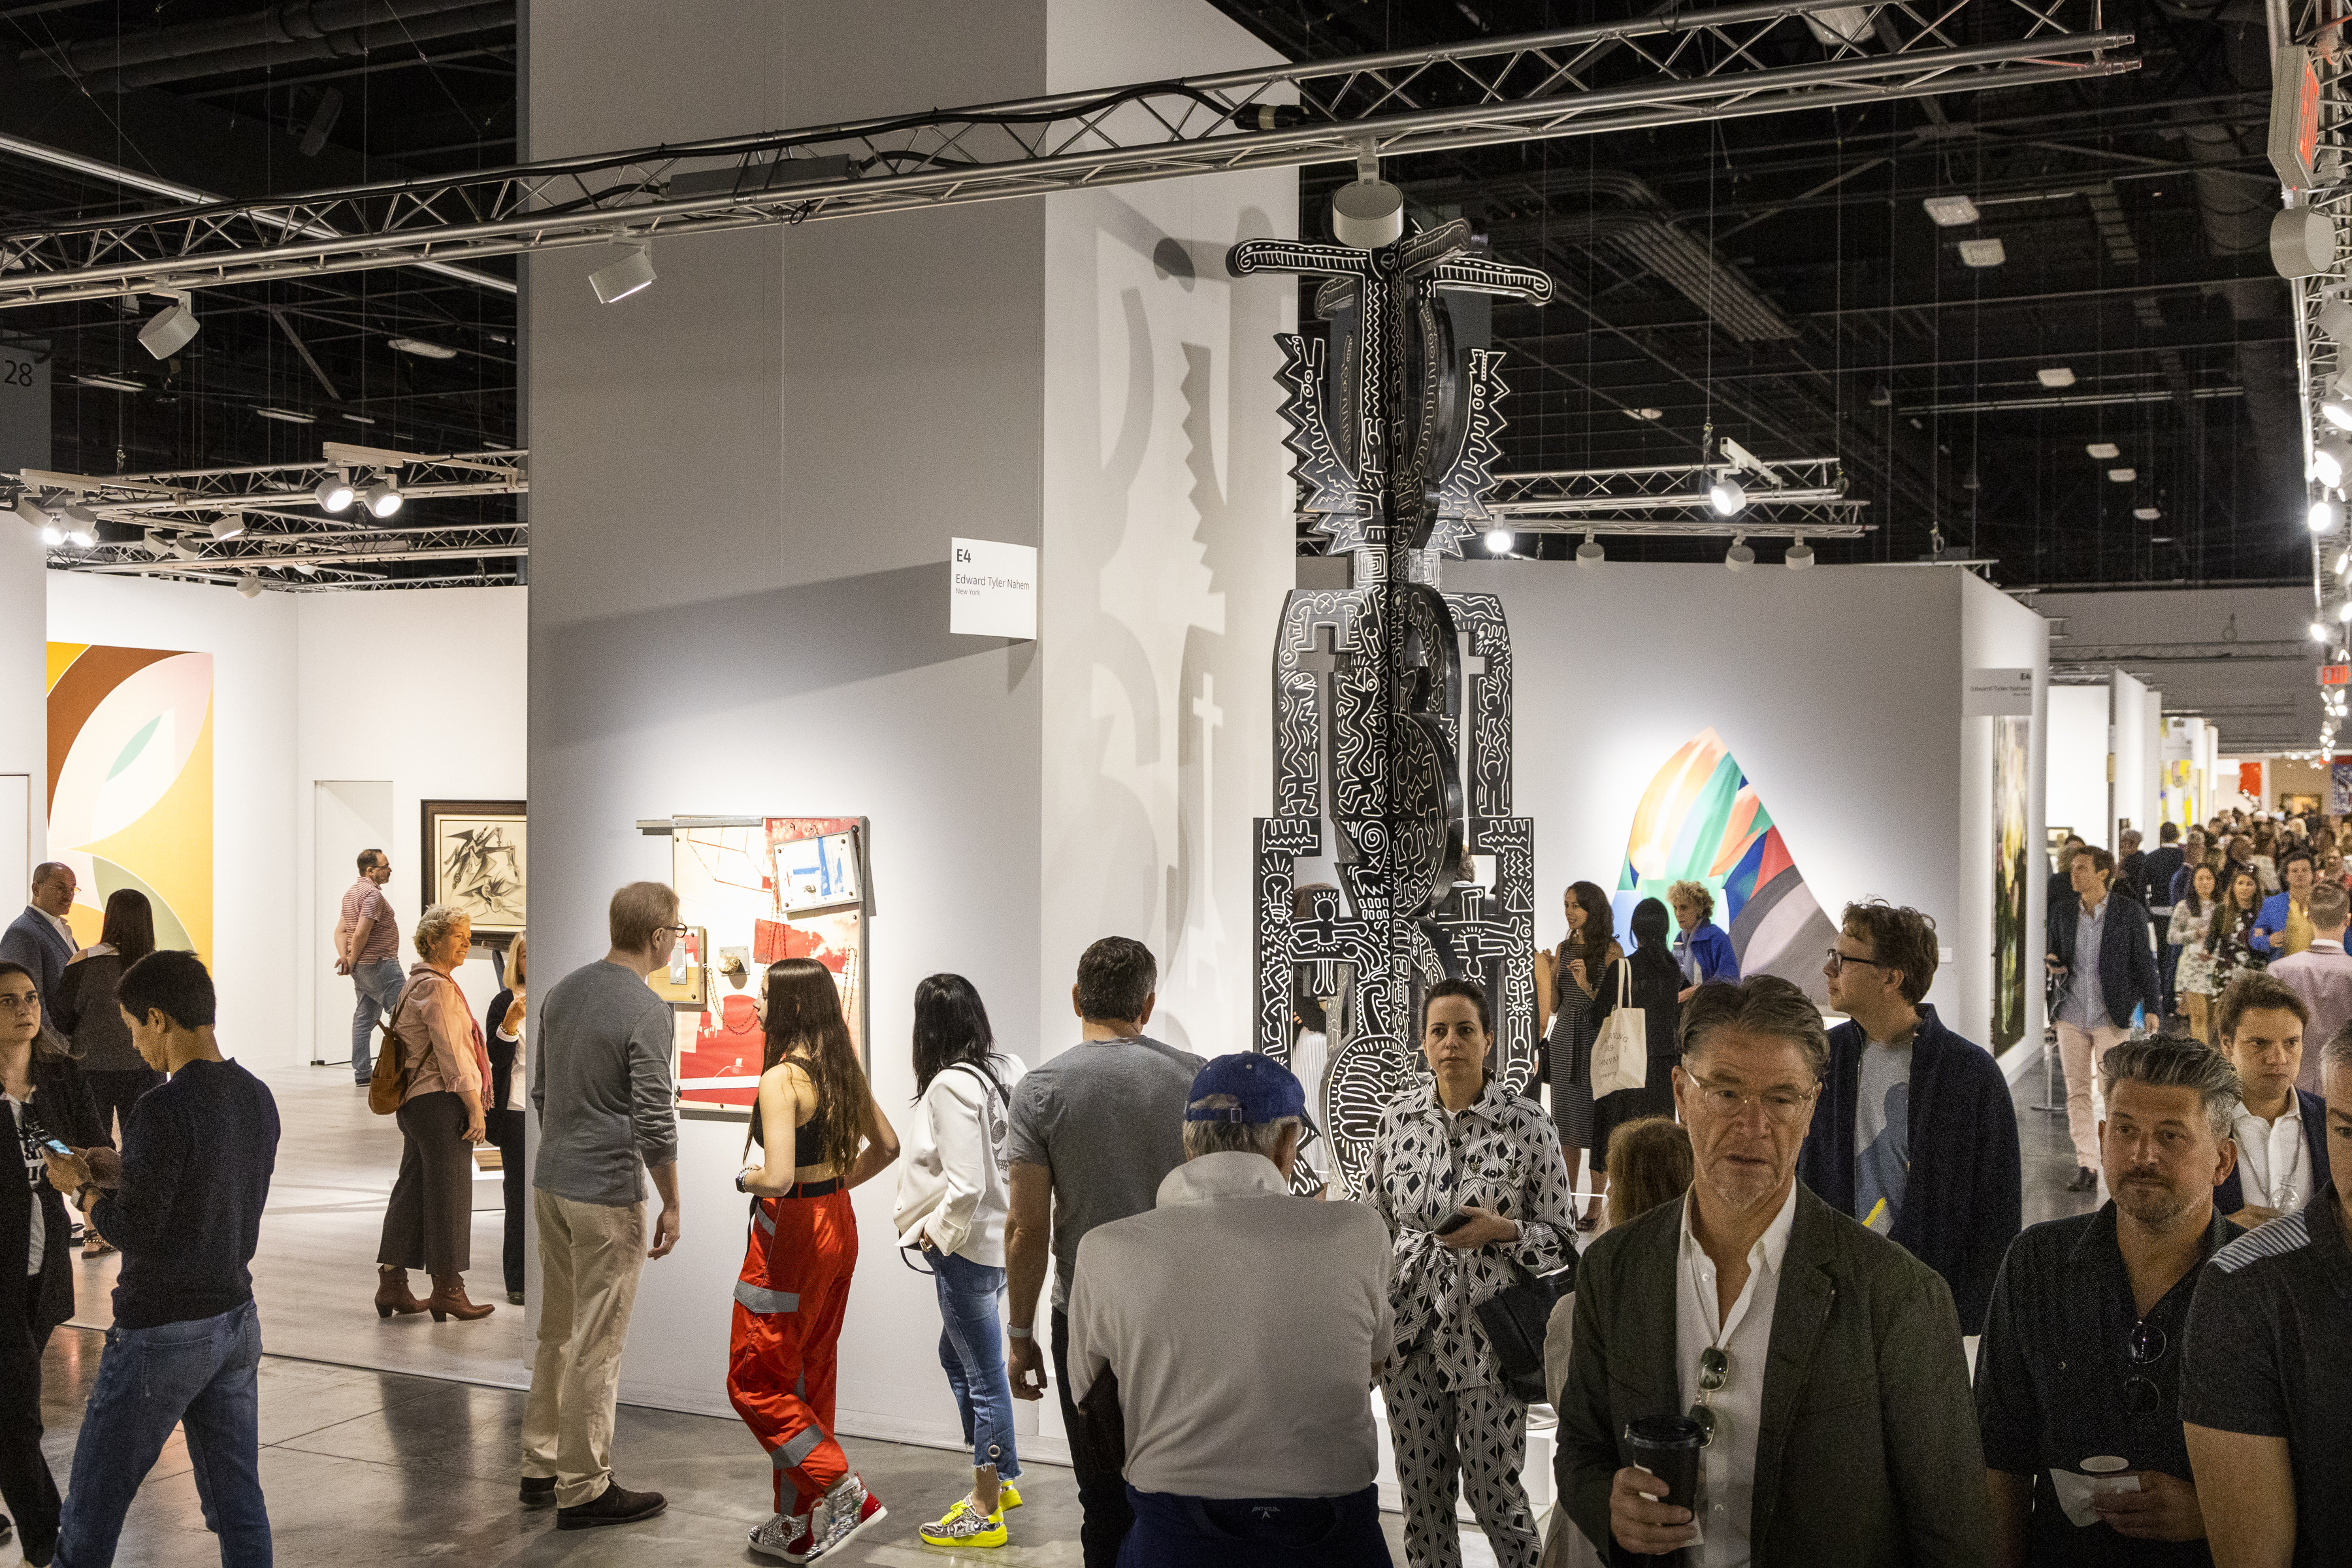 Art Basel Miami Beach at the Epicenter of Art & Climate Change